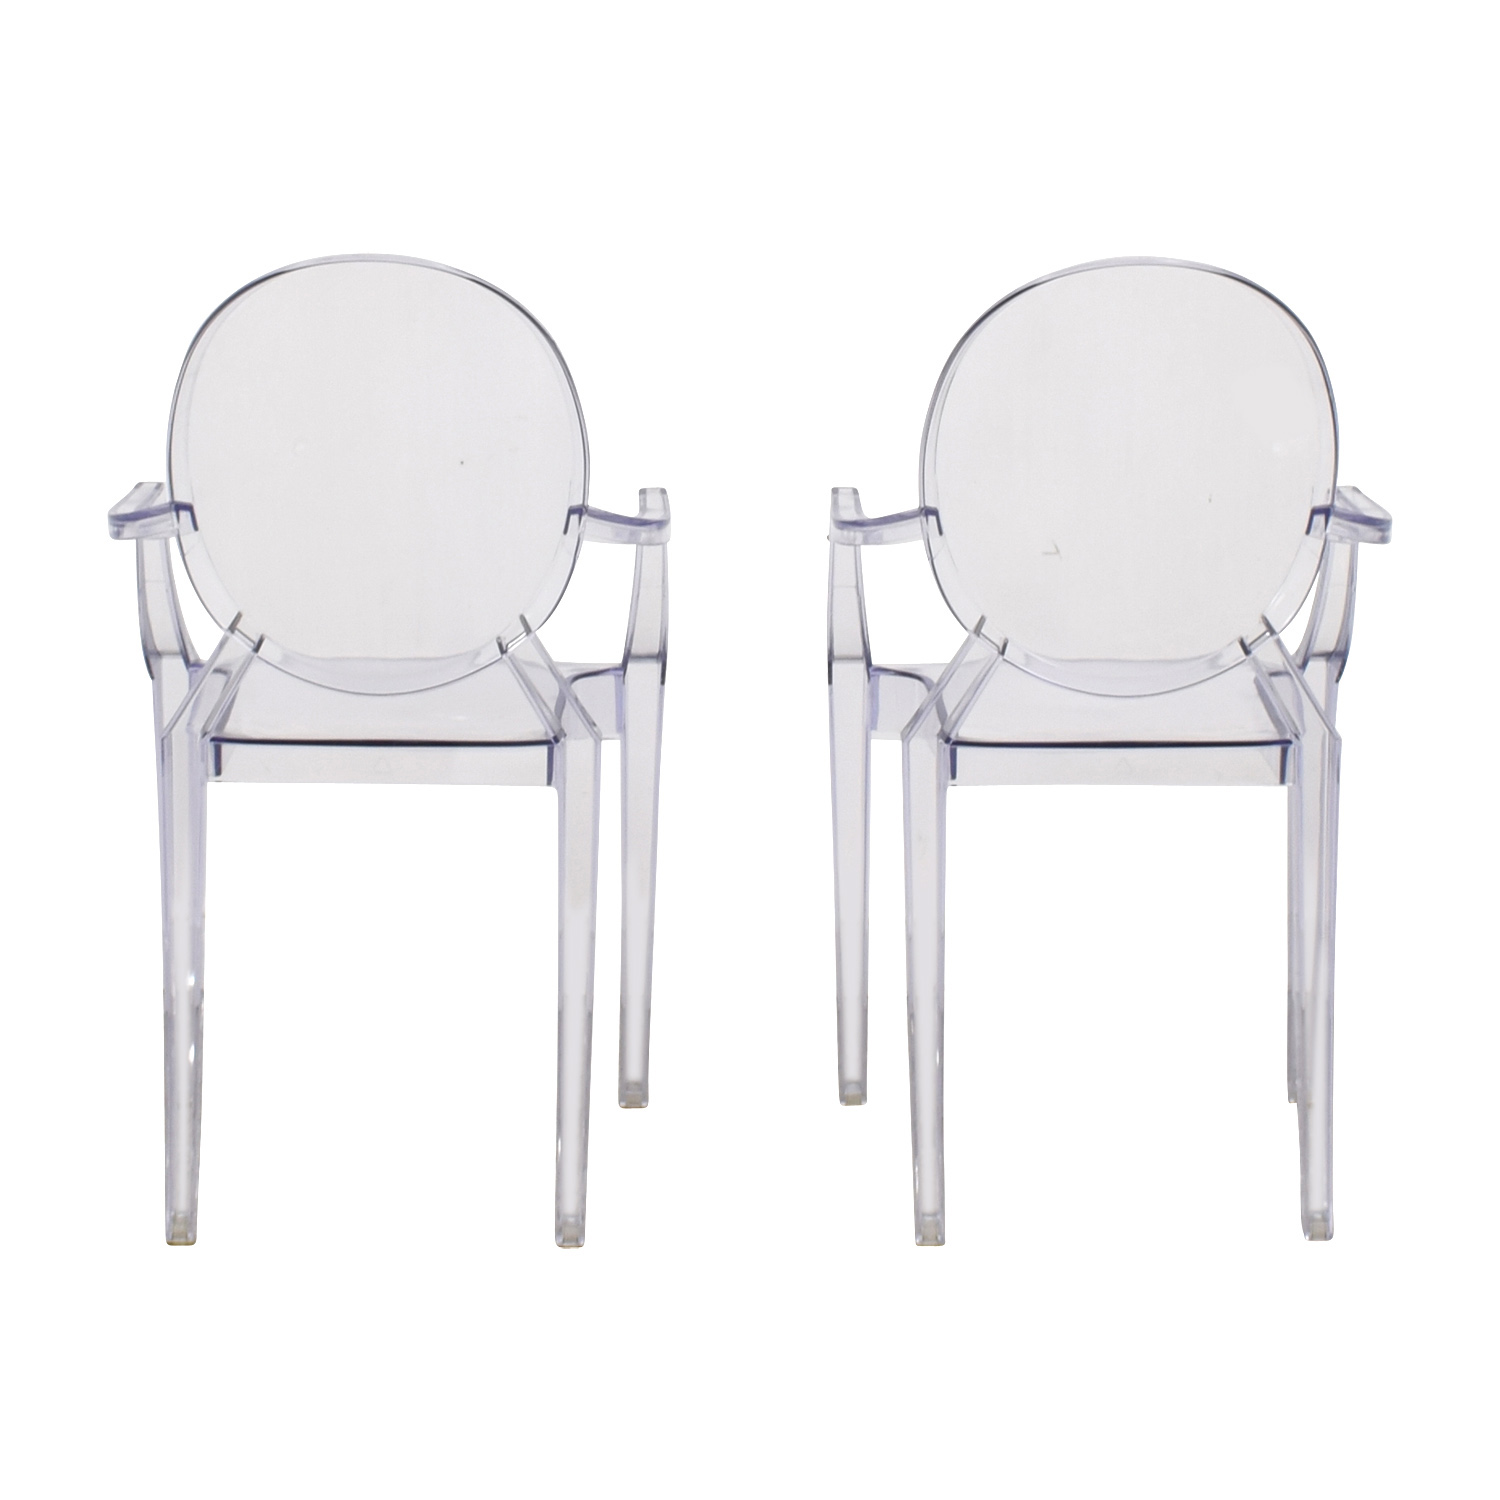 CB2 CB2 Acrylic Chairs